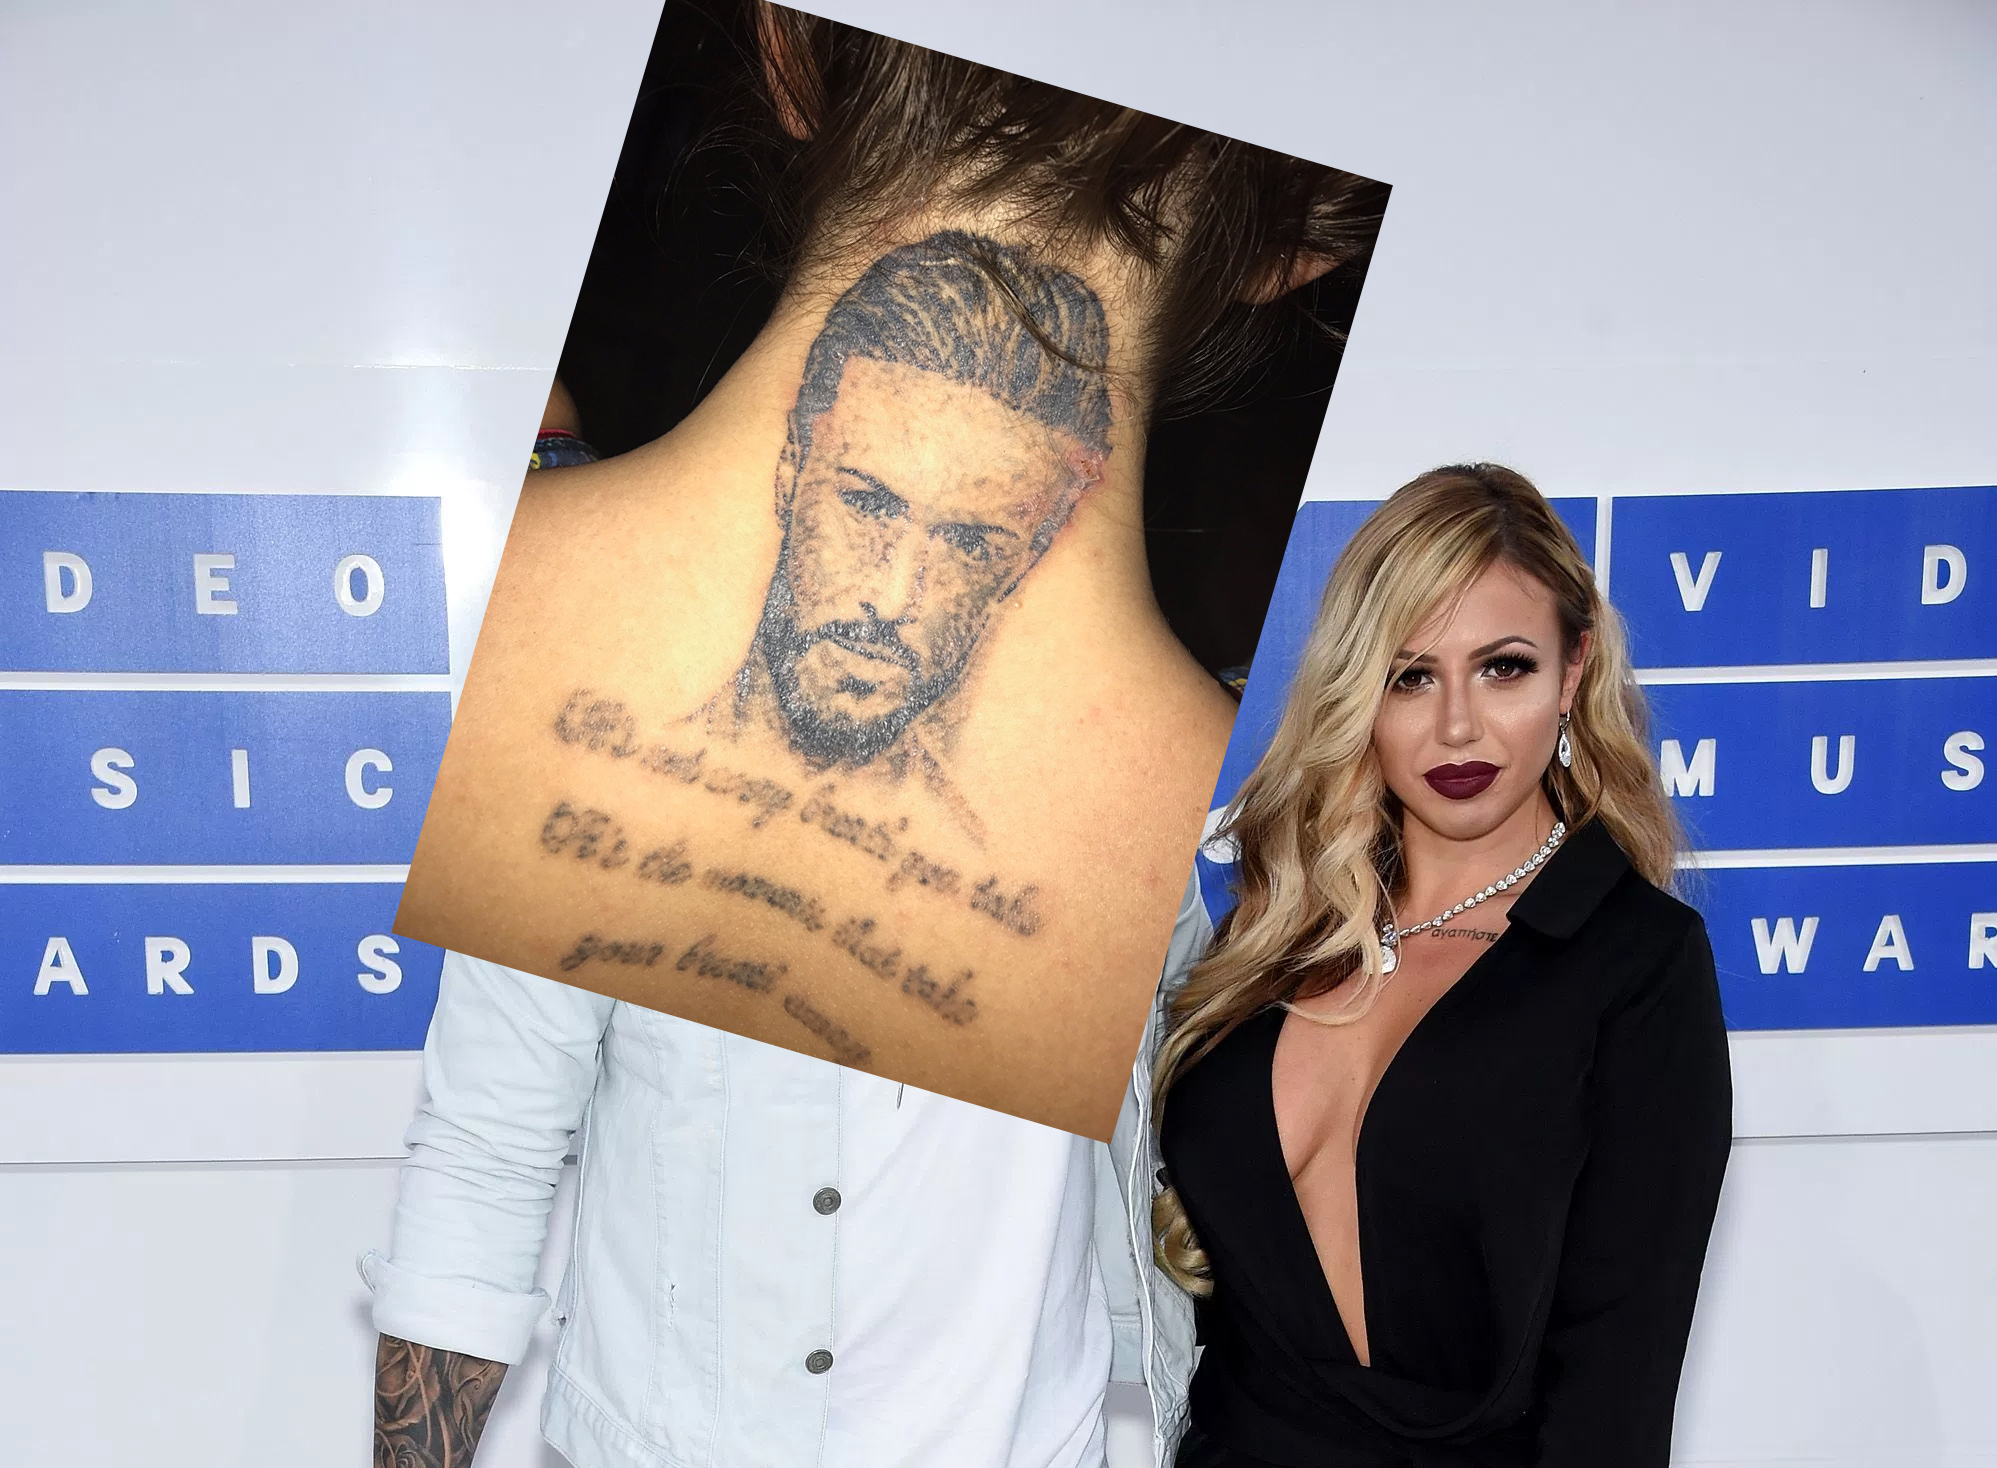 Holly Hagan shades ex-Kyle Christie as tattoo removal gives his portrait 'skin condition'